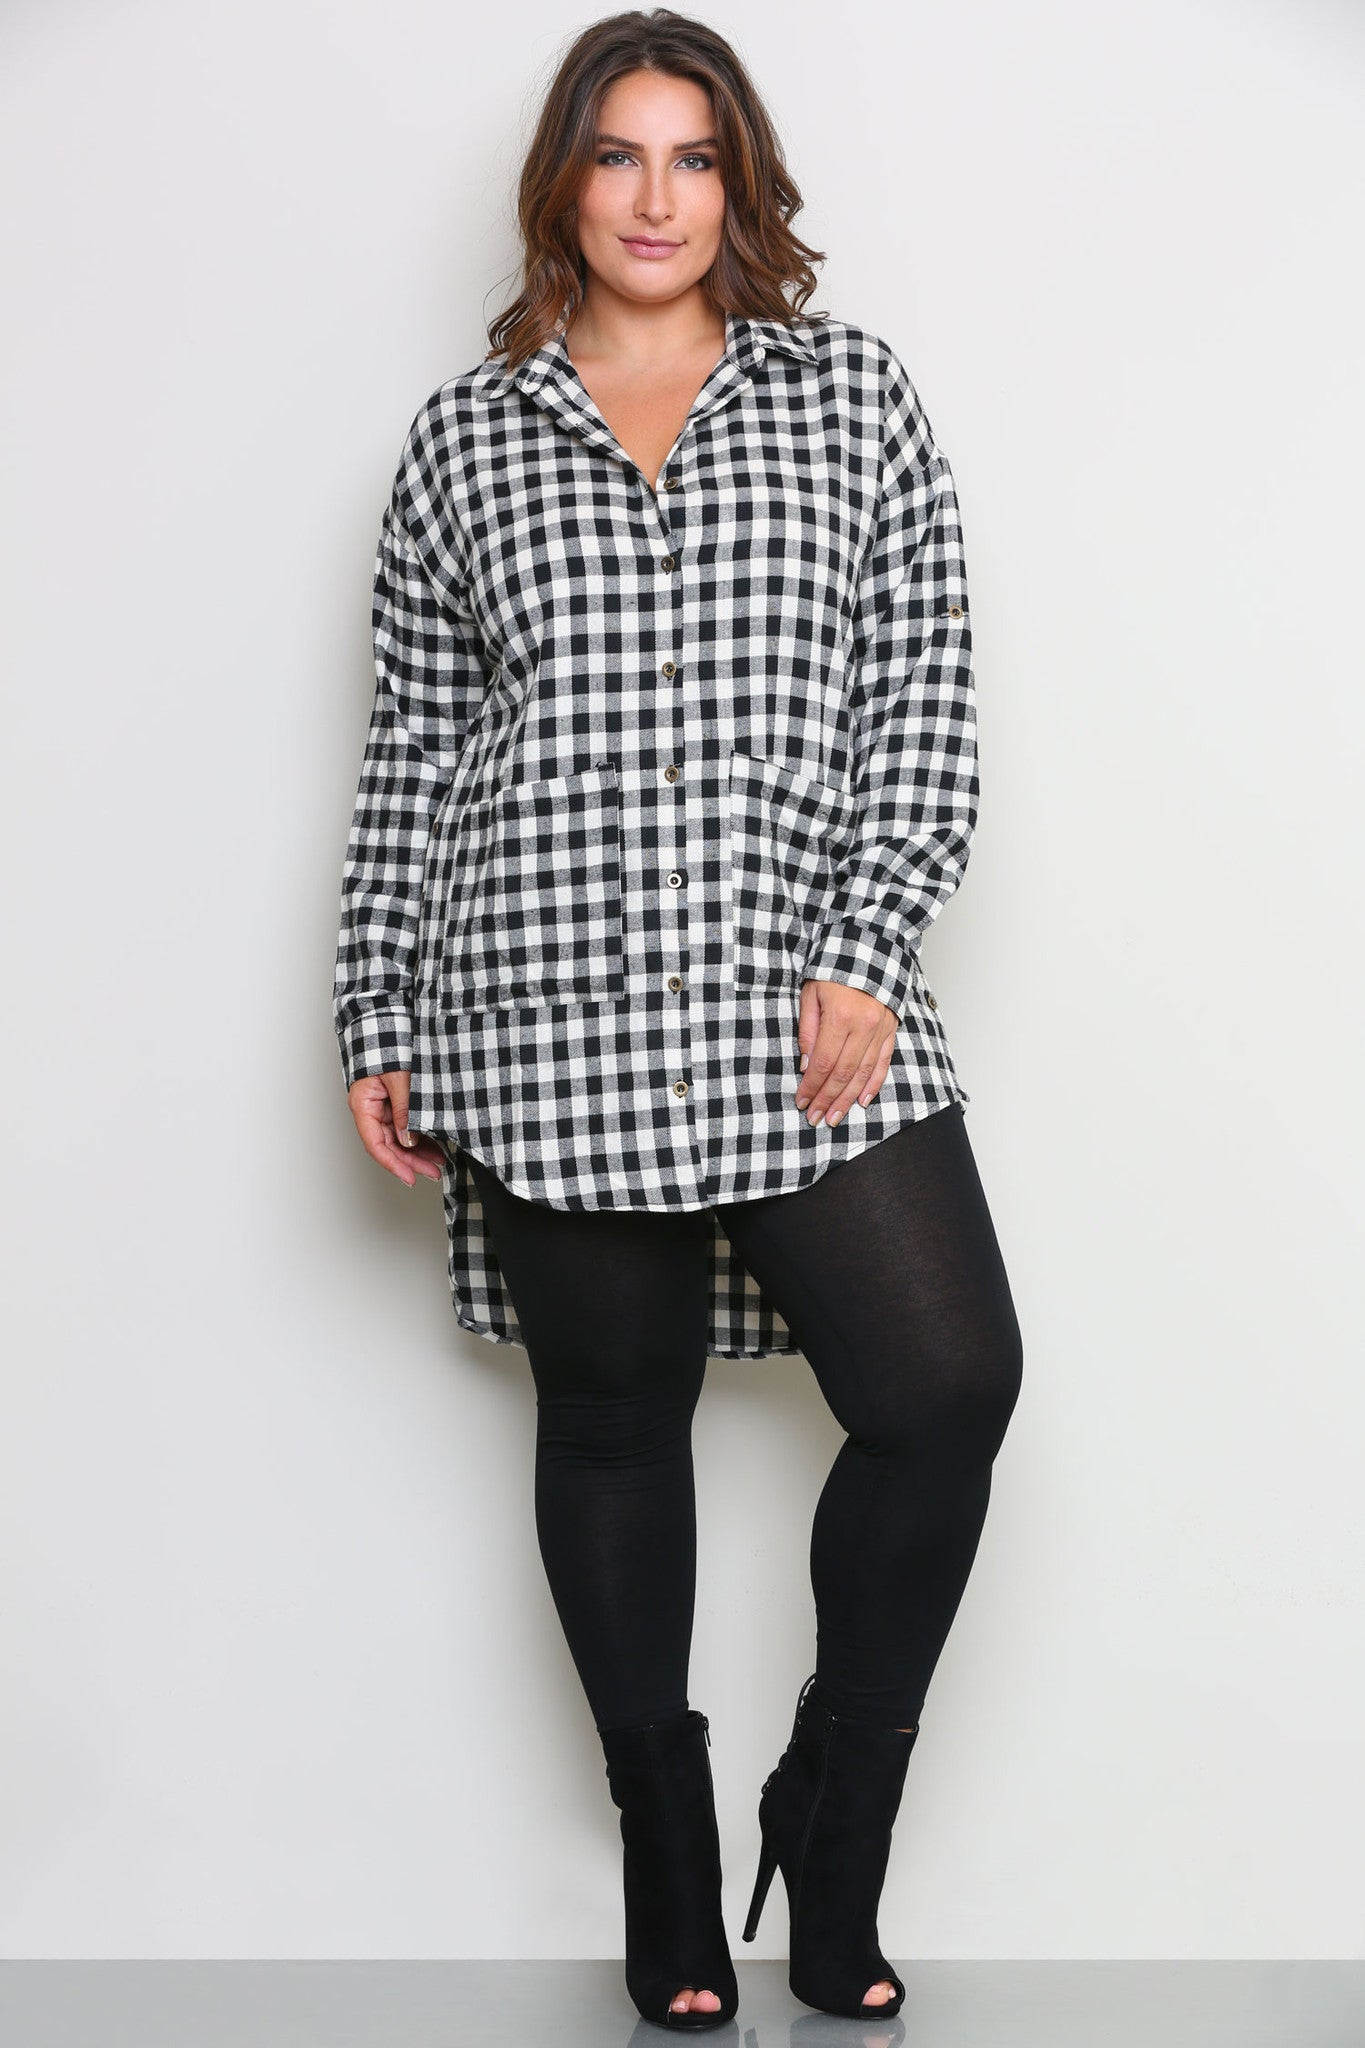 RONNIE FLANNEL SHIRTDRESS - Glam Envy - 1